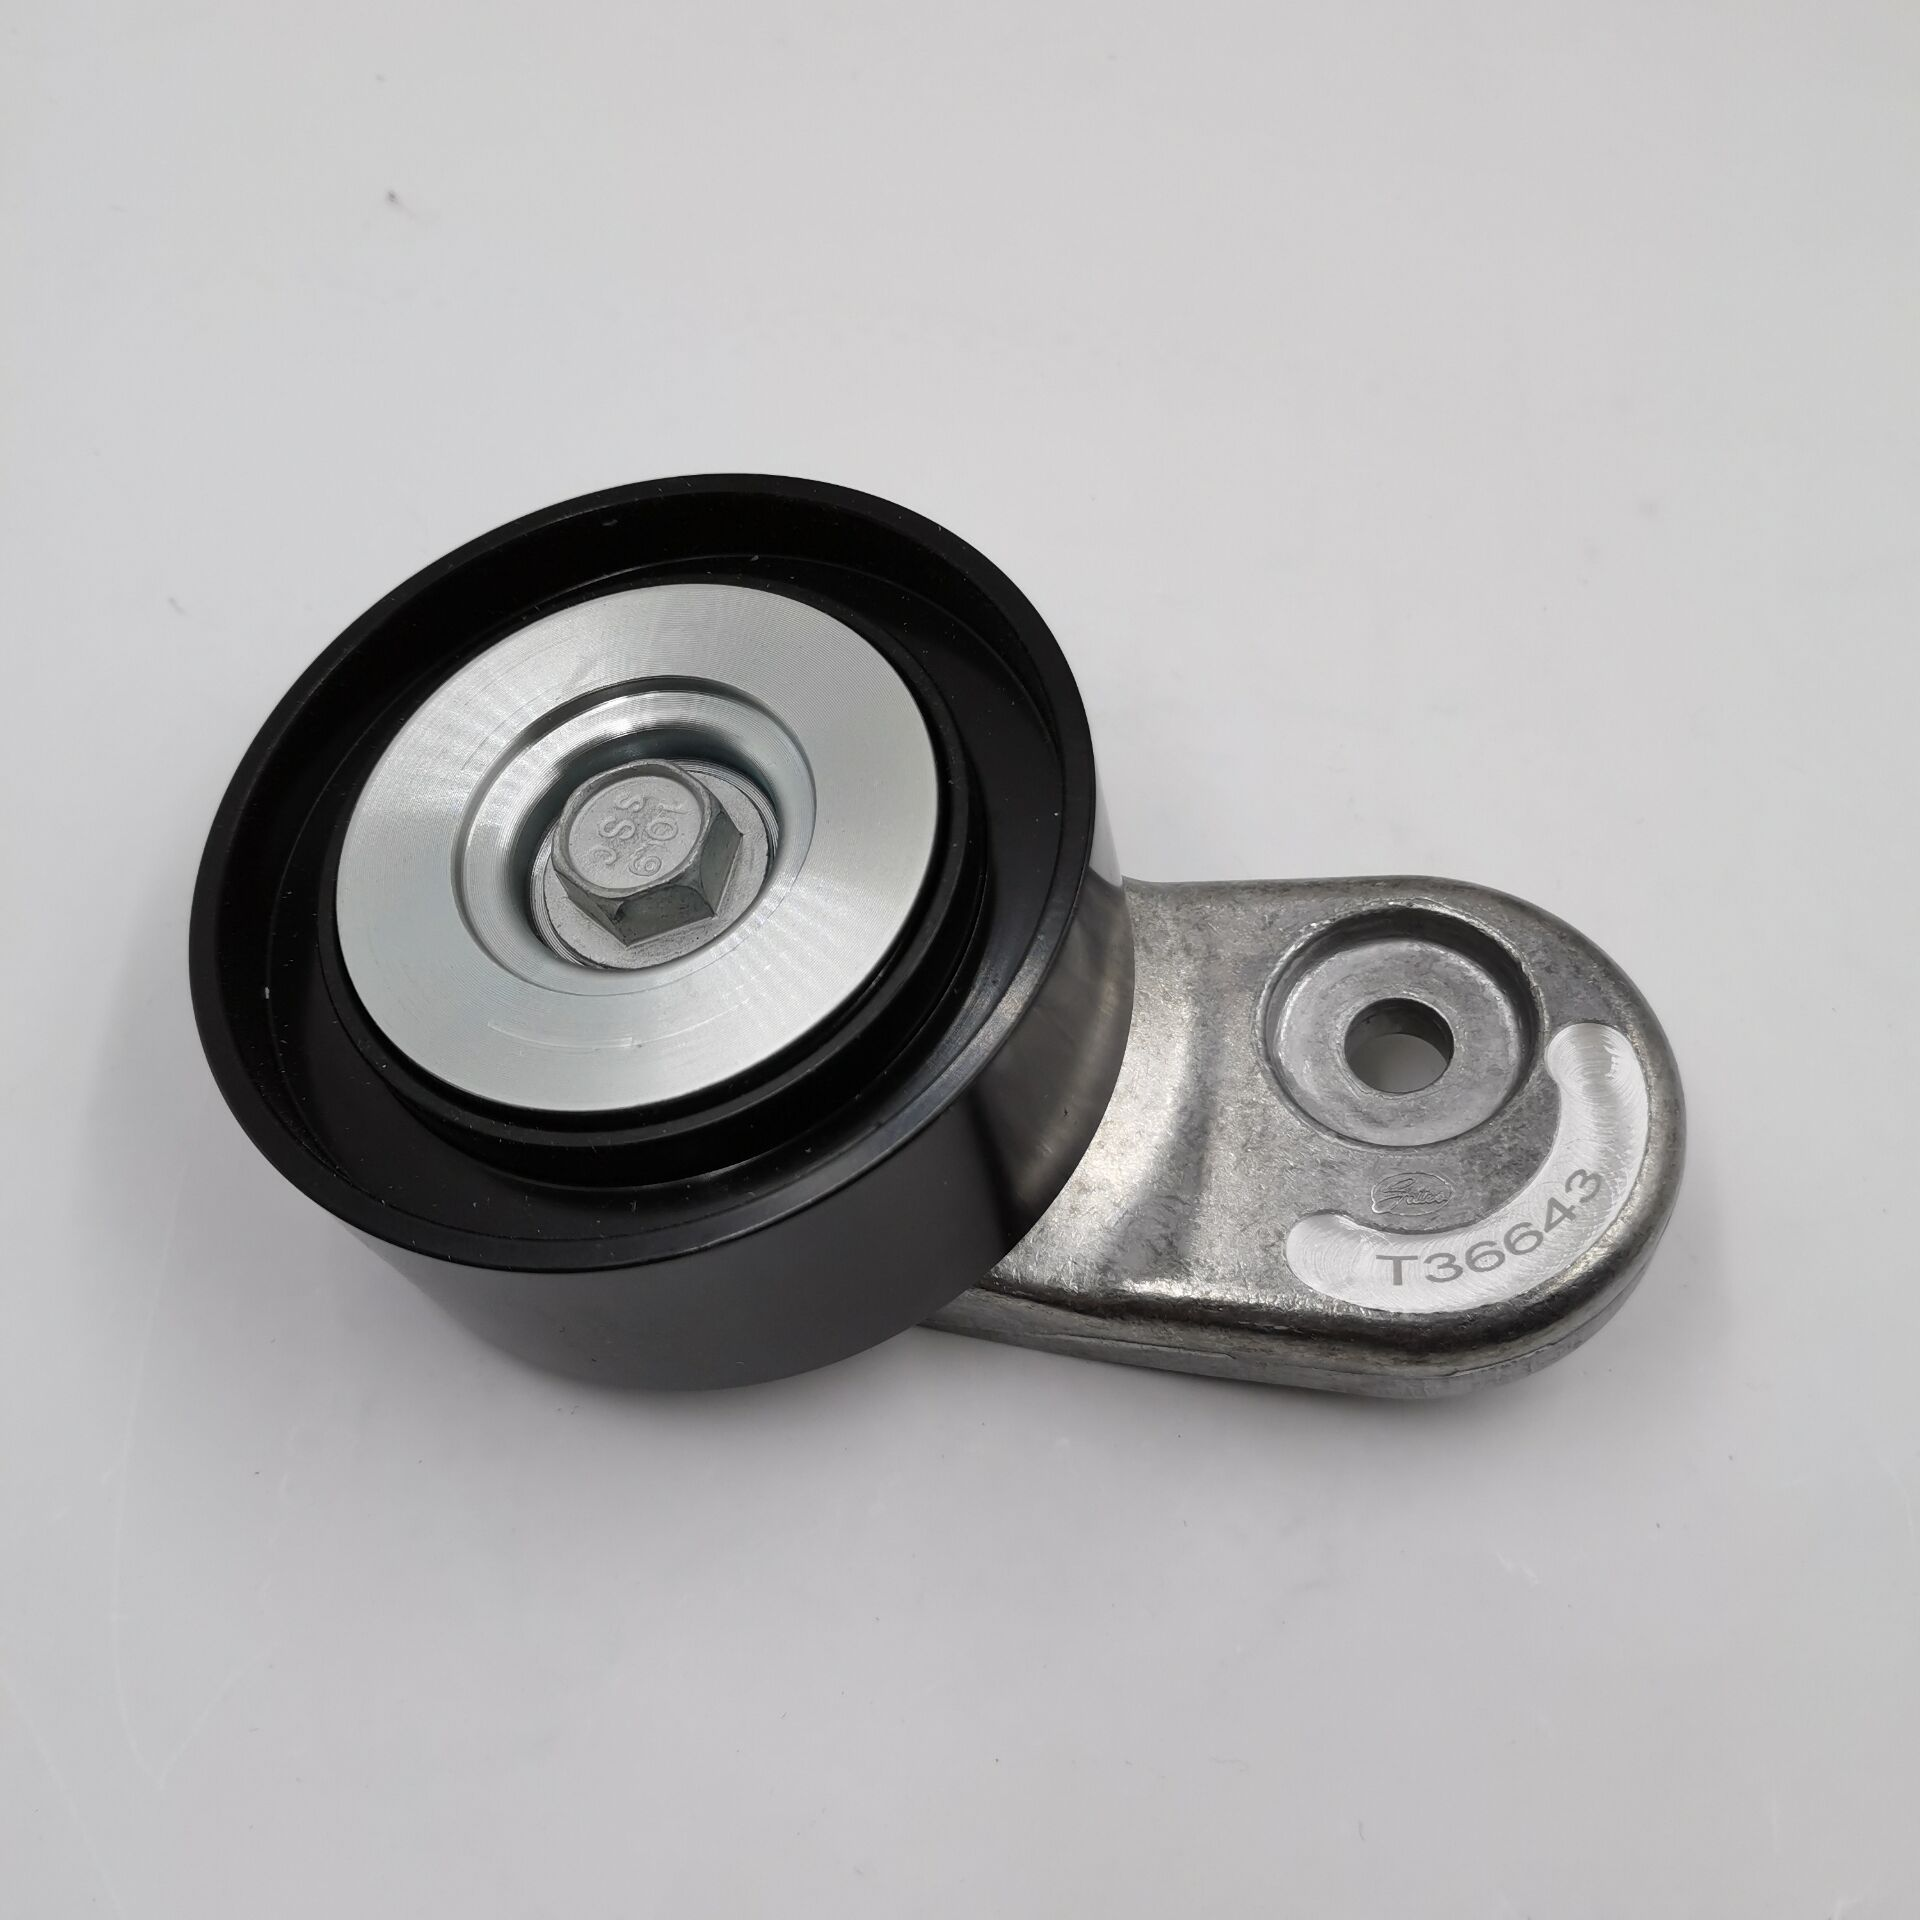 BELT TENSIONER 9362000670 A9362002170 FIT FOR MERCEDE BENZ